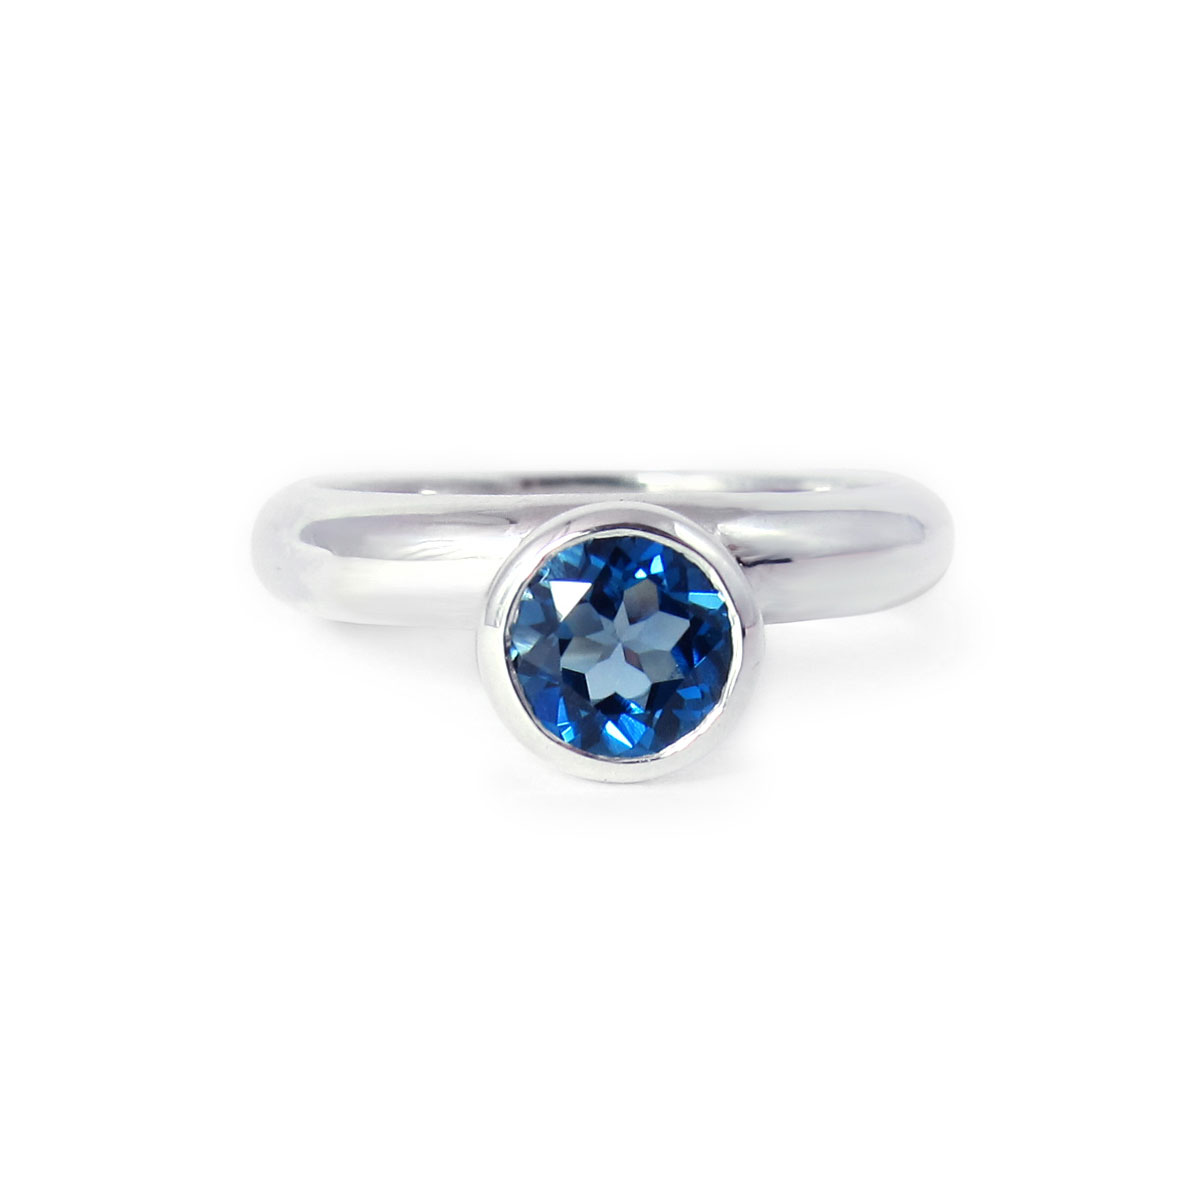 Genuine London blue topaz ring in sterling silver